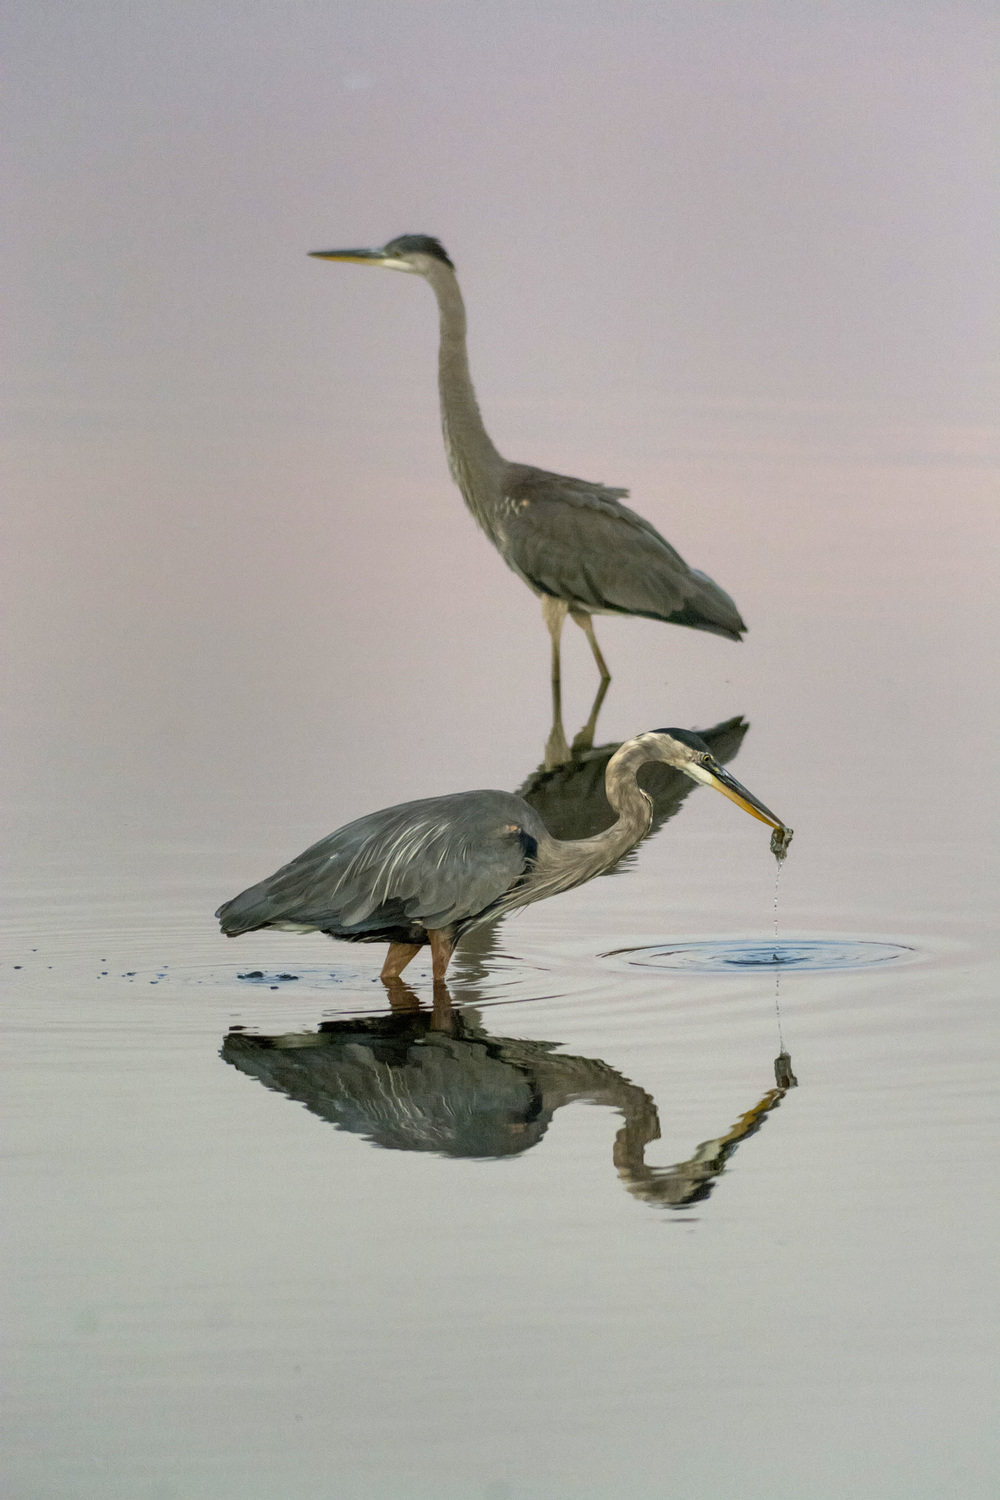 Herons at Bombay Hook NWR